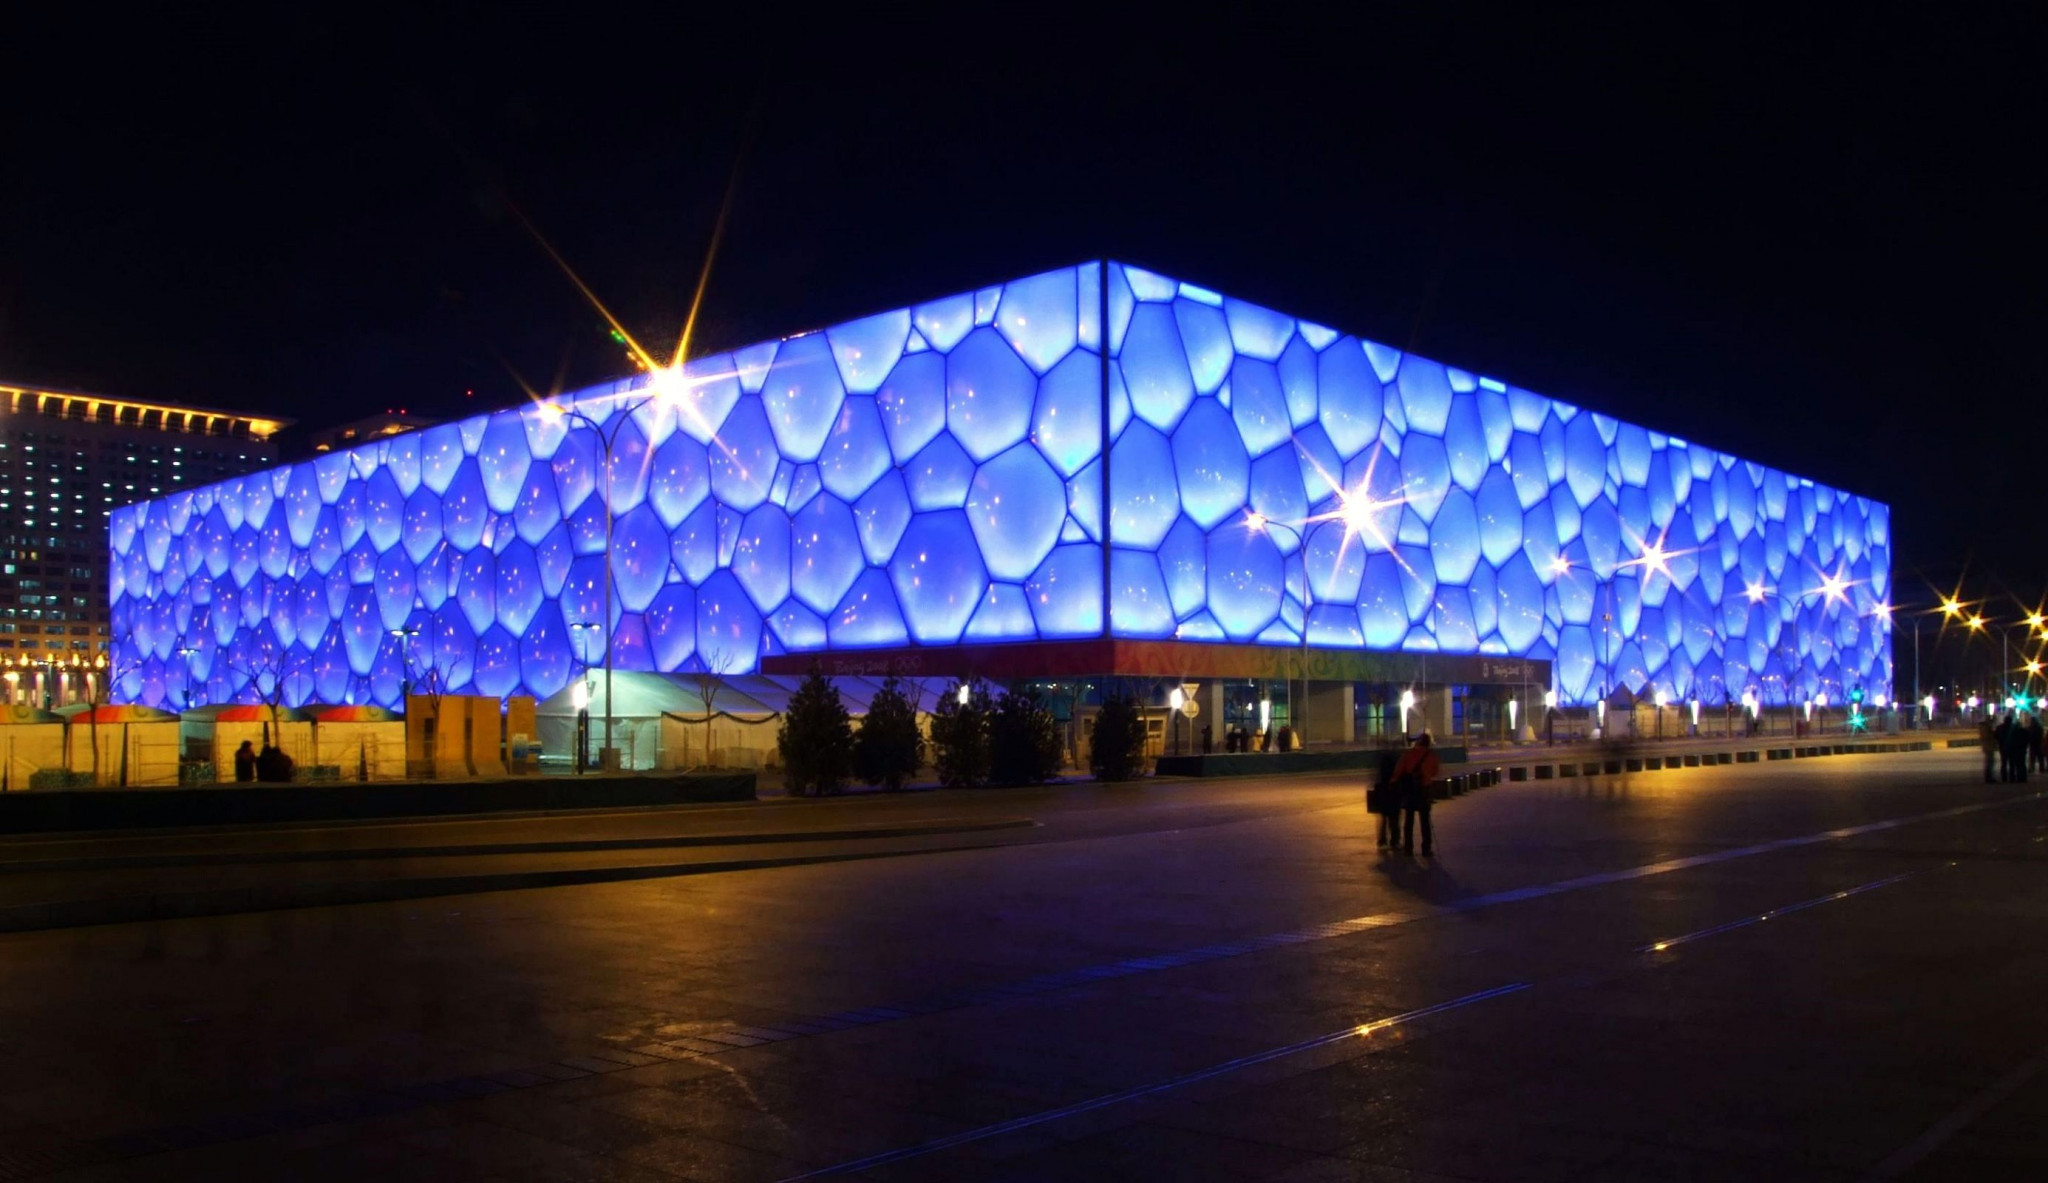 The Chinese leg of the Diving World Series was due to take place at Beijing National Aquatics Center ©Wikipedia